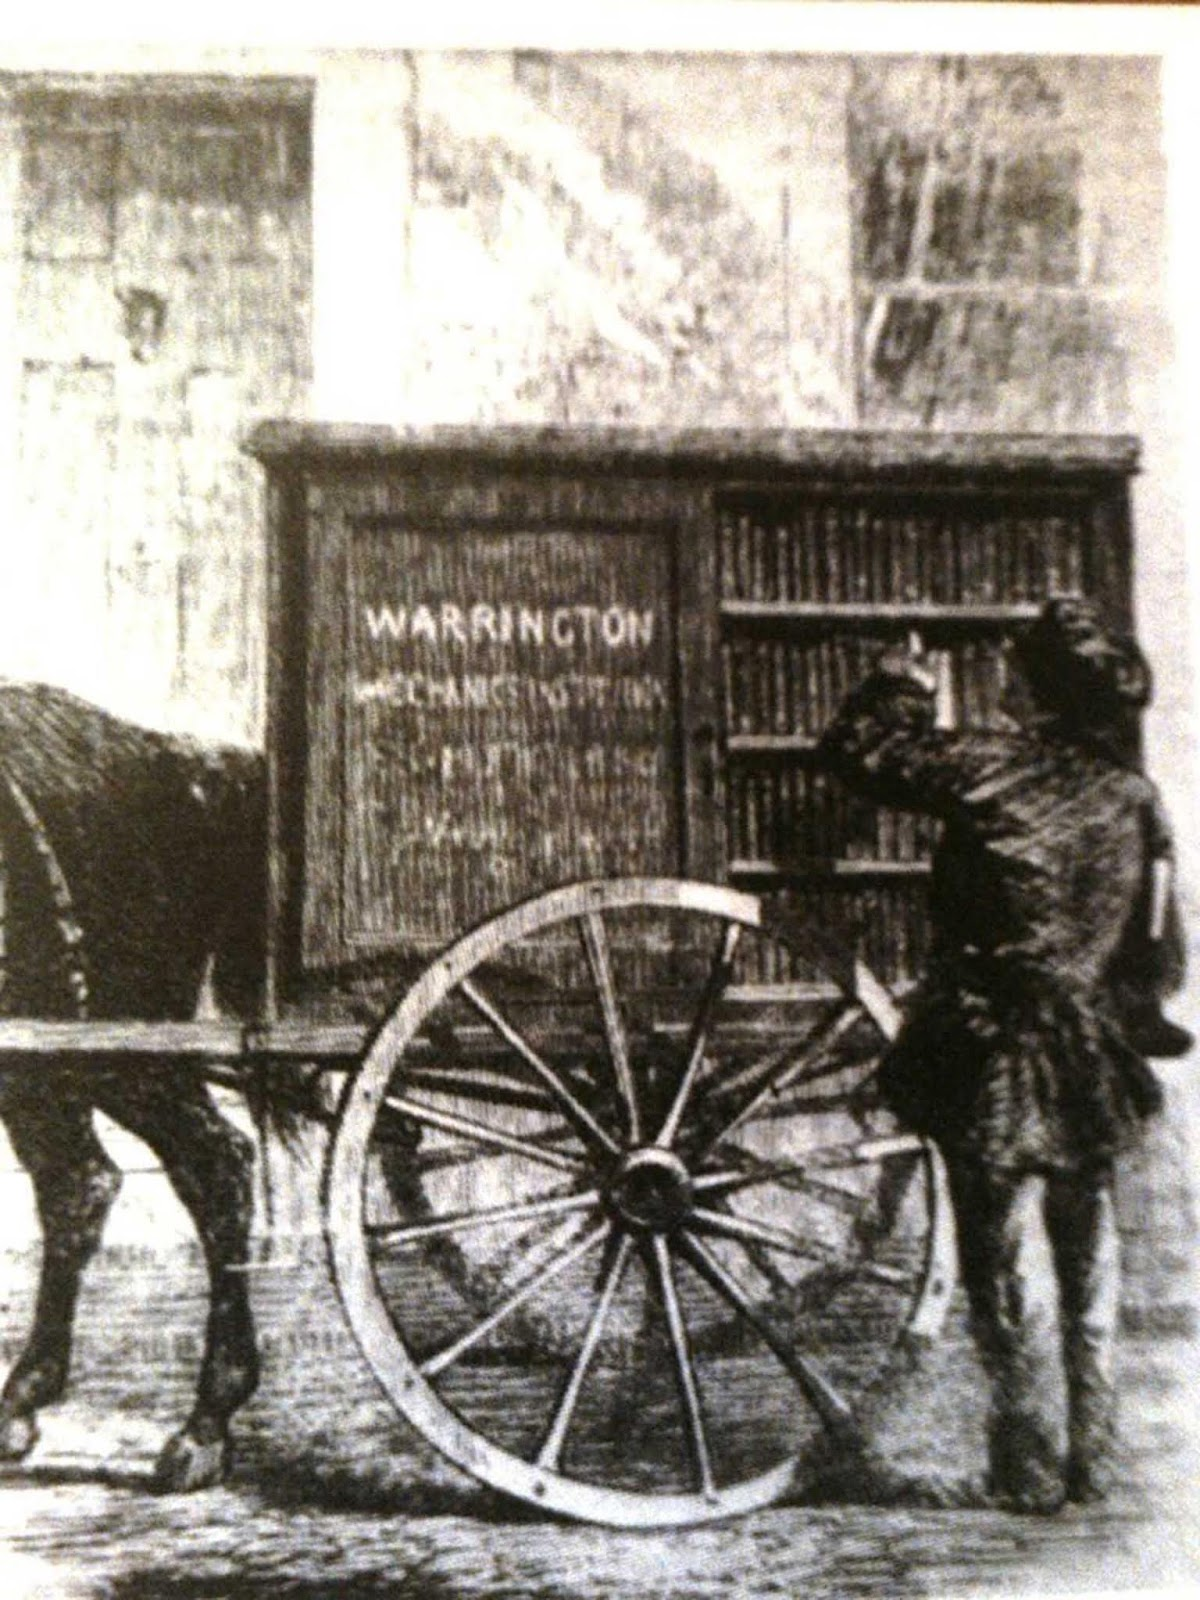 Una de las primeras bibliotecas móviles, la Institution Mechanics 'Institution Perambulating Library, de The Illustrated London News, 1860.